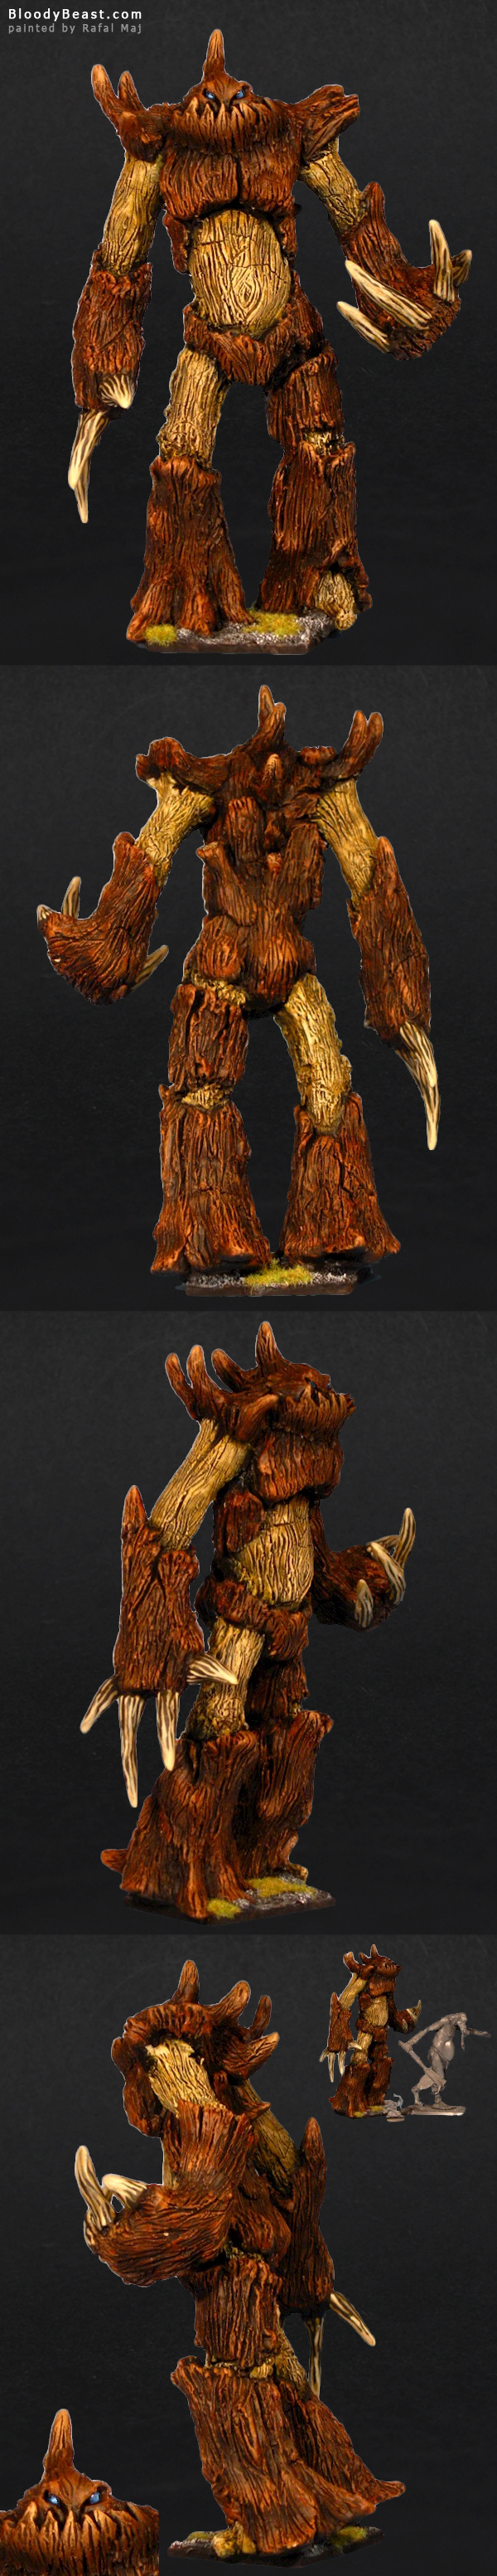 Wood Elf Treeman sculpted and painted by Rafal Maj (BloodyBeast.com)